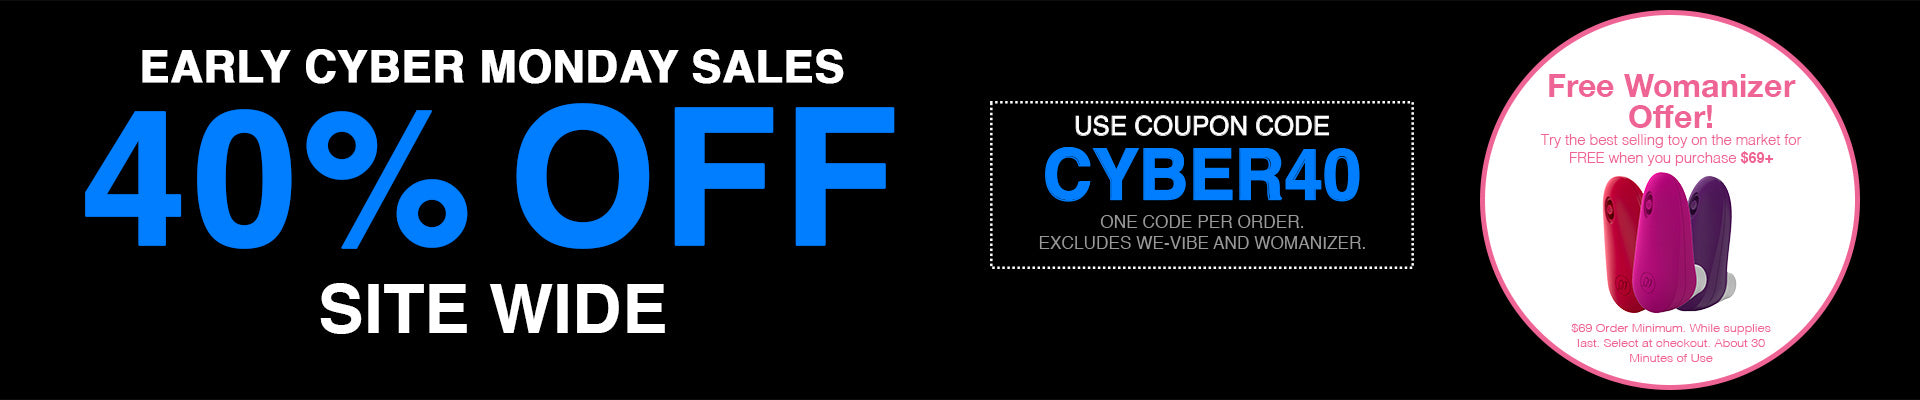 40% Off Site Wide - Use Code CYBER40